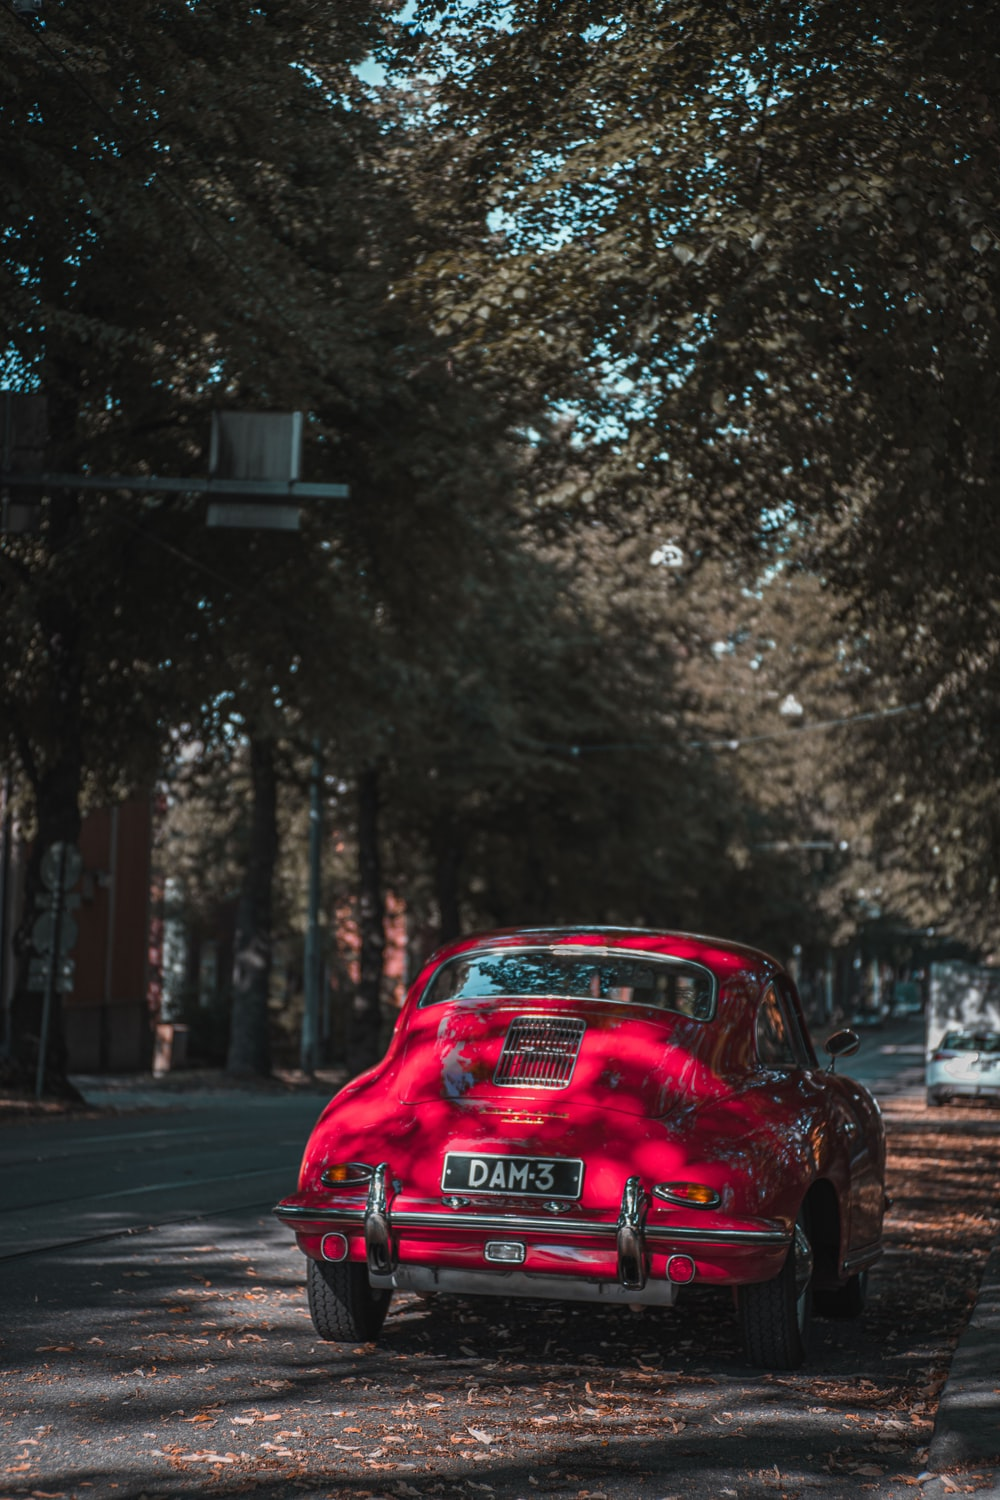 red car on road near trees during daytime